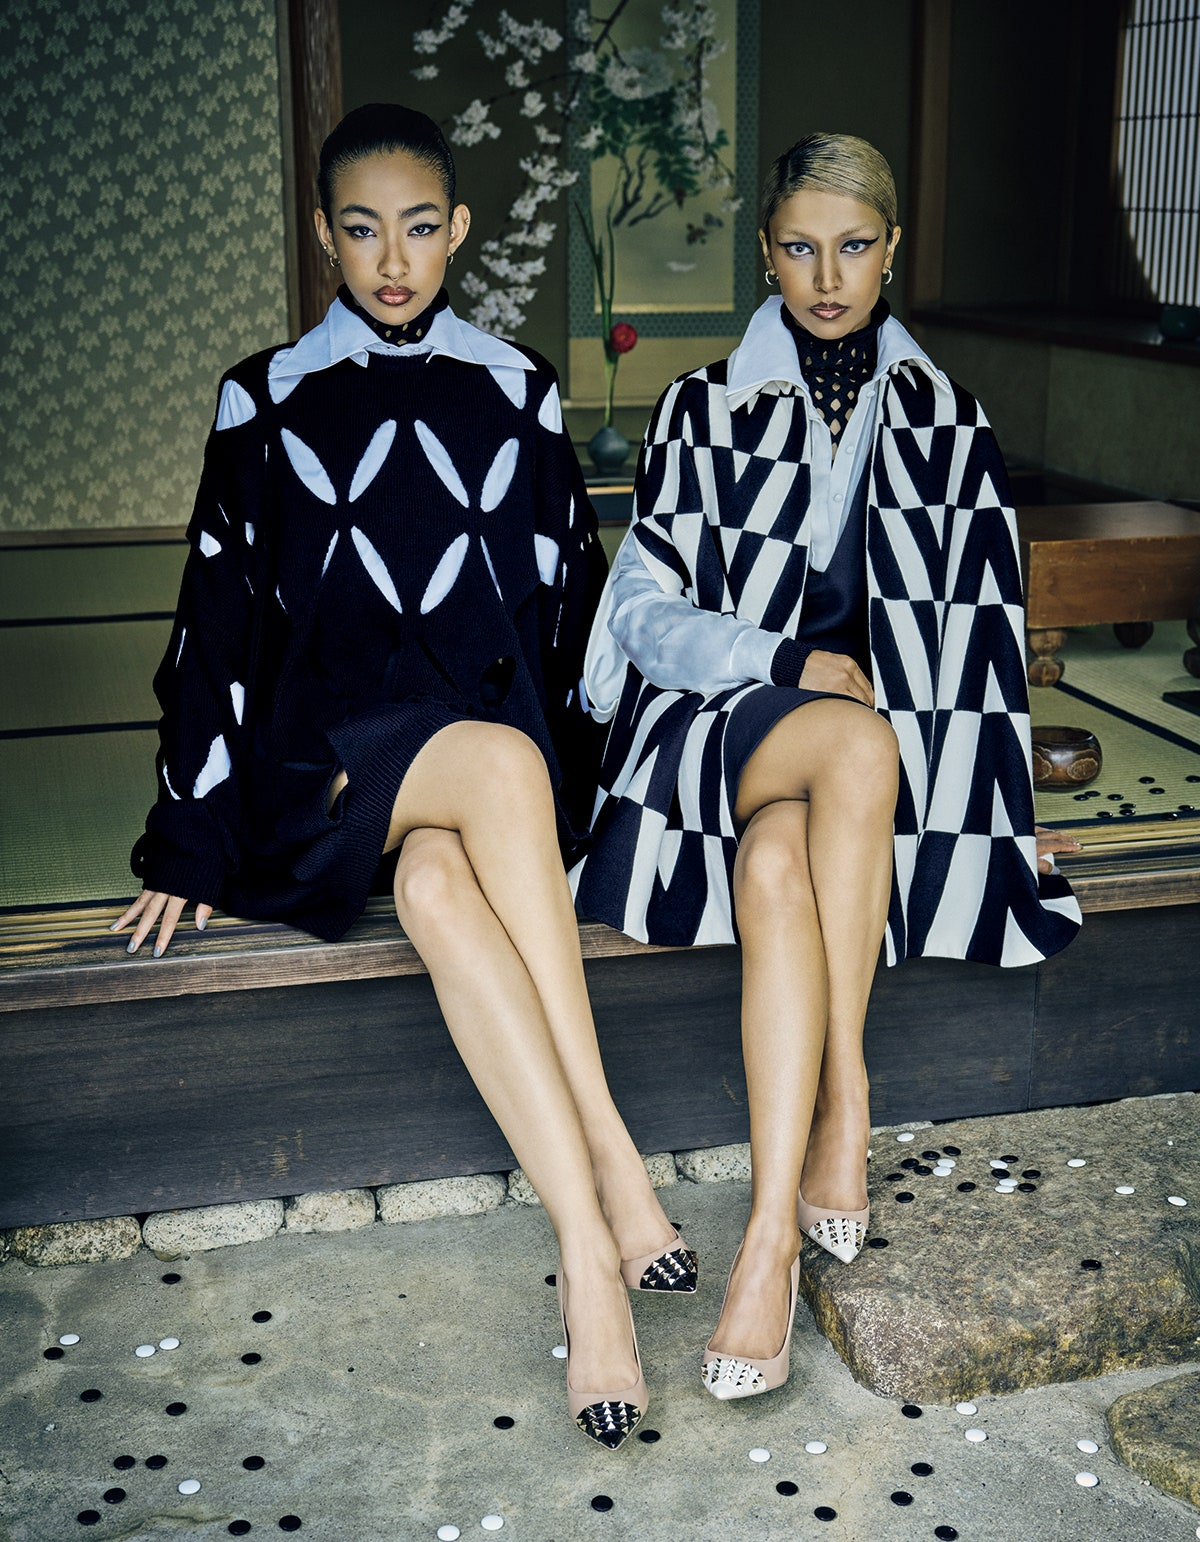 ''Twins In Fashion'' by Takay for Vogue Japan October 2021